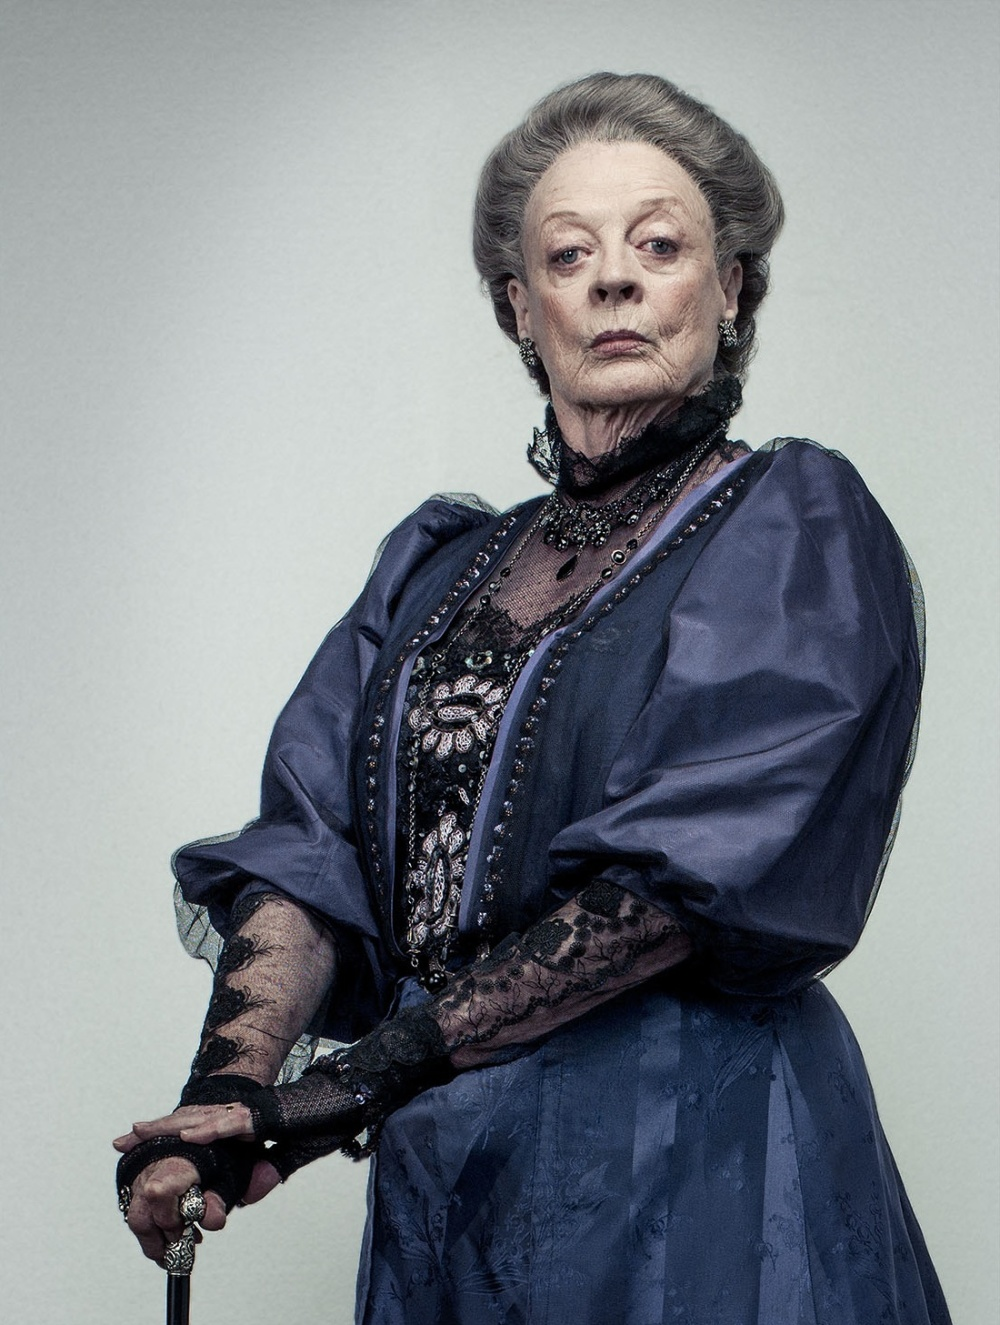 Downton Abbeys Maggie Smith krijgt retrospectief